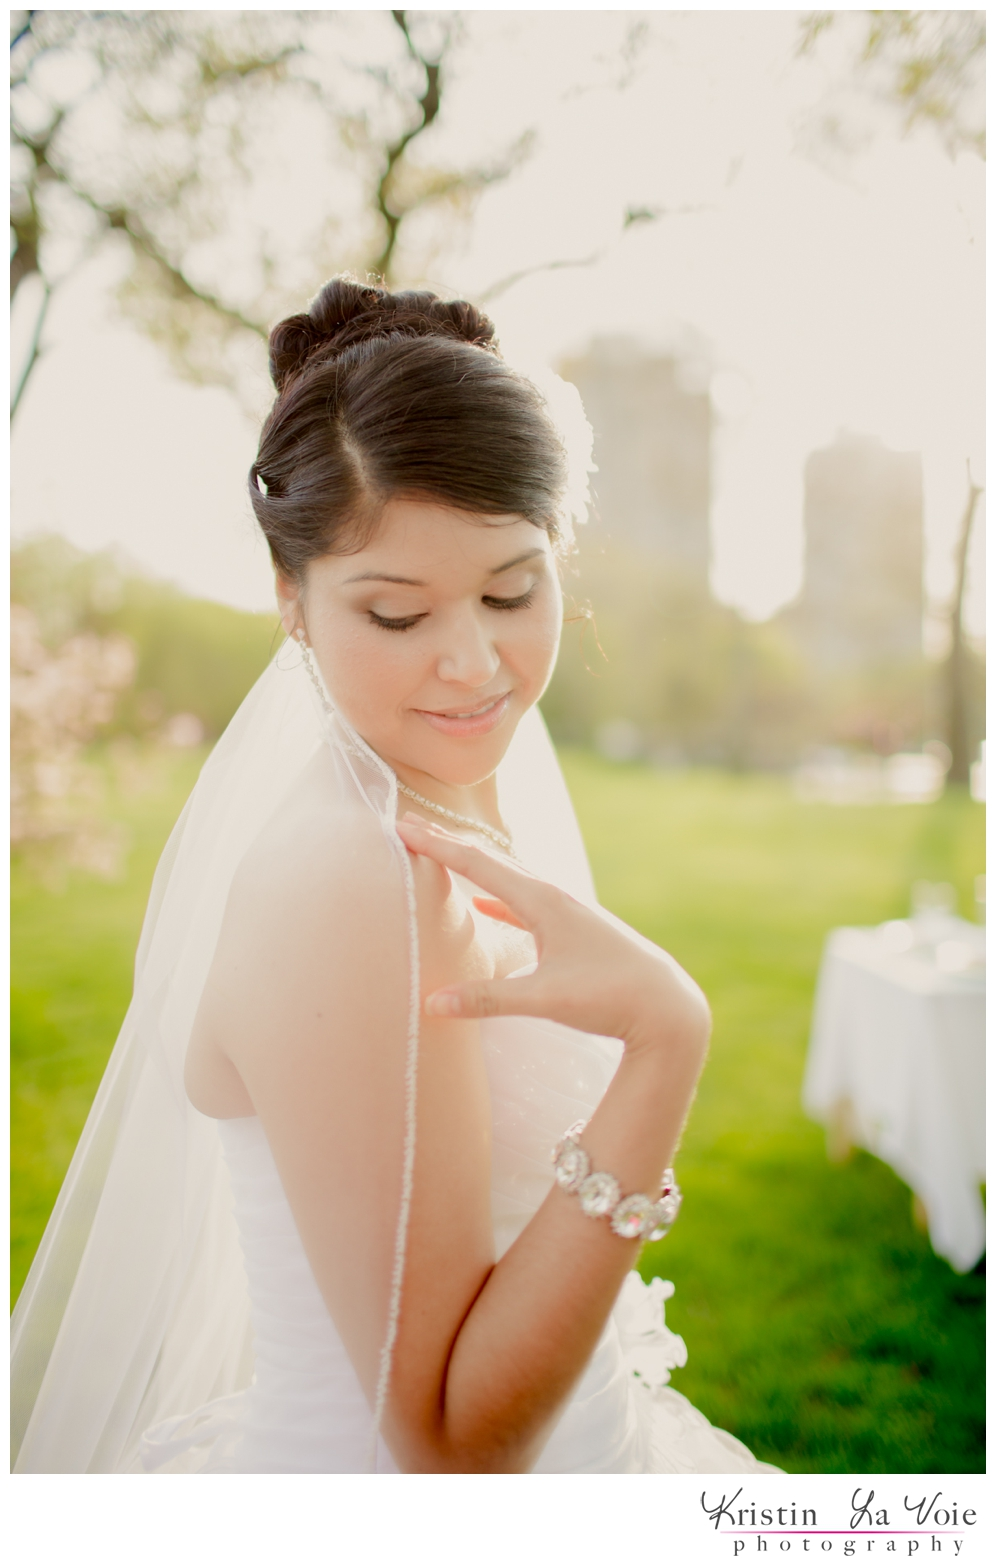 Kristin-La-Voie-Photography-Mint-Yellow-Styled-Shoot-Lincoln-Park-Wedding-Photographer-85.jpg